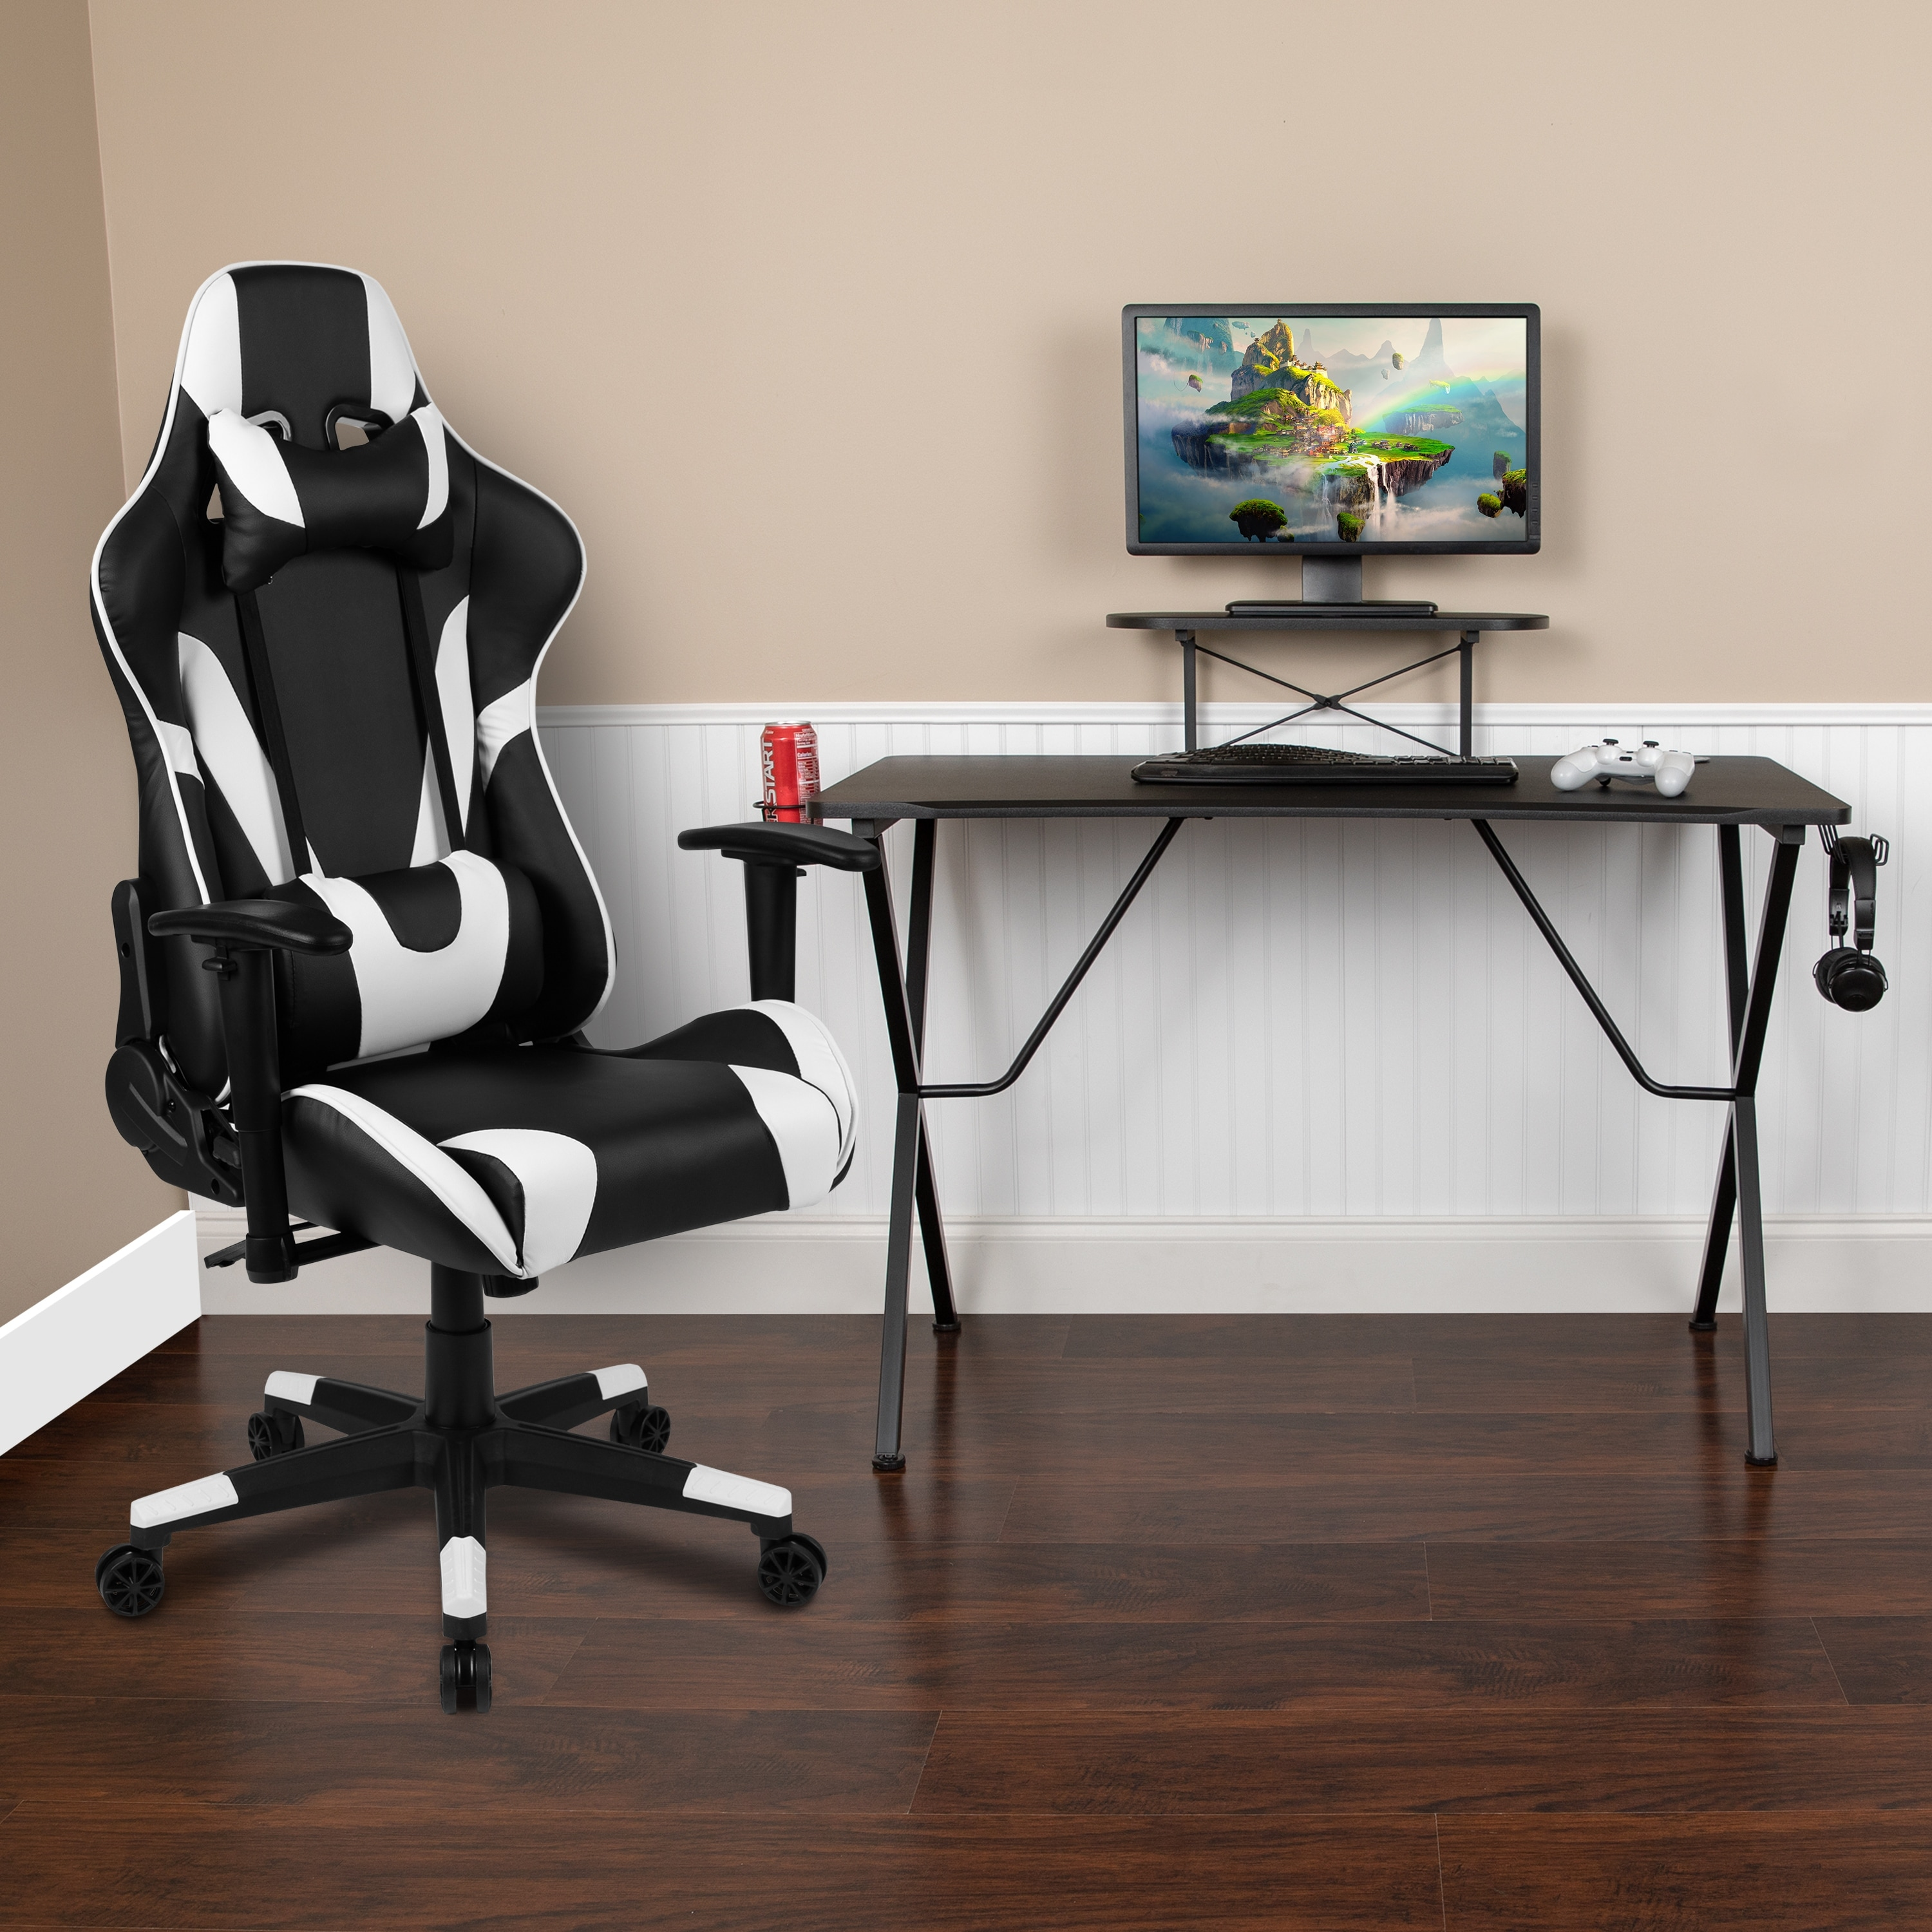 Image of: Shop Gaming Desk Chair Set Overstock 31247625